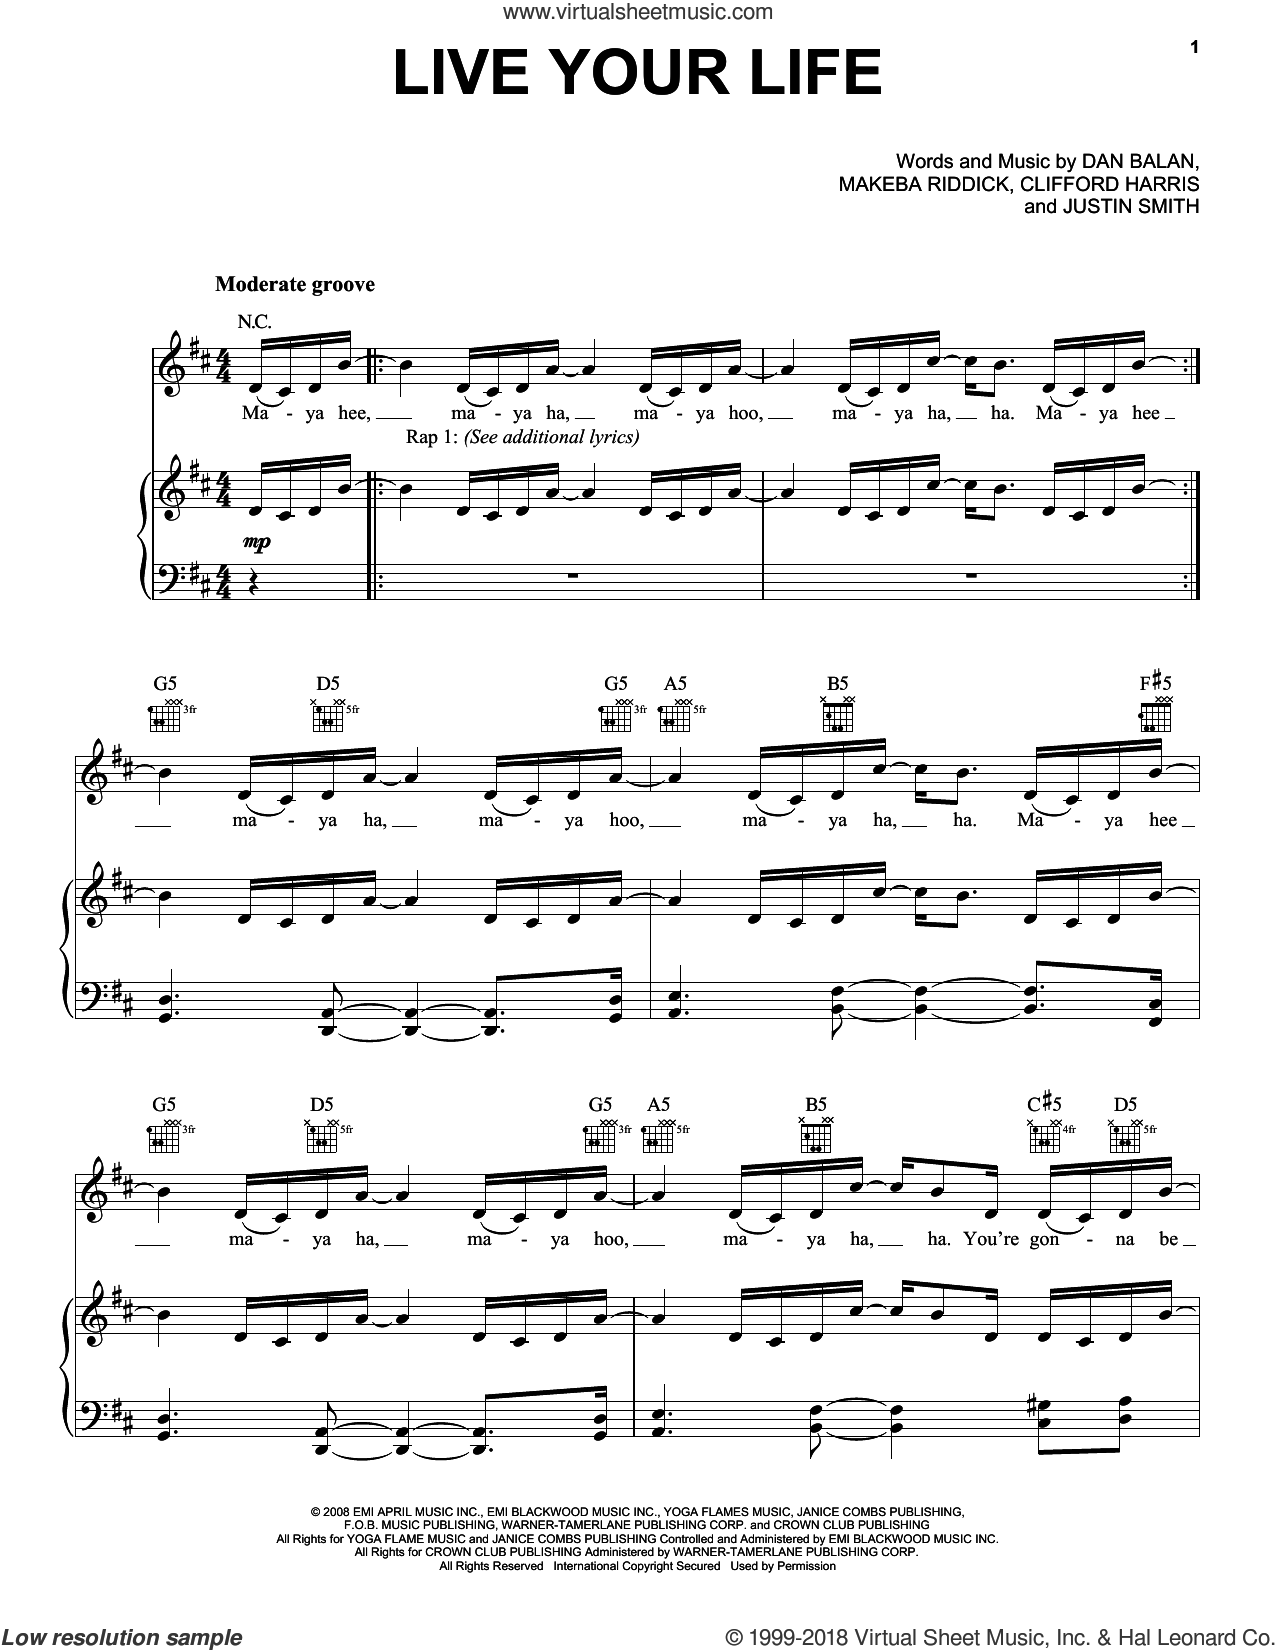 Live Your Life sheet music for voice, piano or guitar by T.I., Clifford Harris, Justin Smith and Makeba Riddick, intermediate. Score Image Preview.